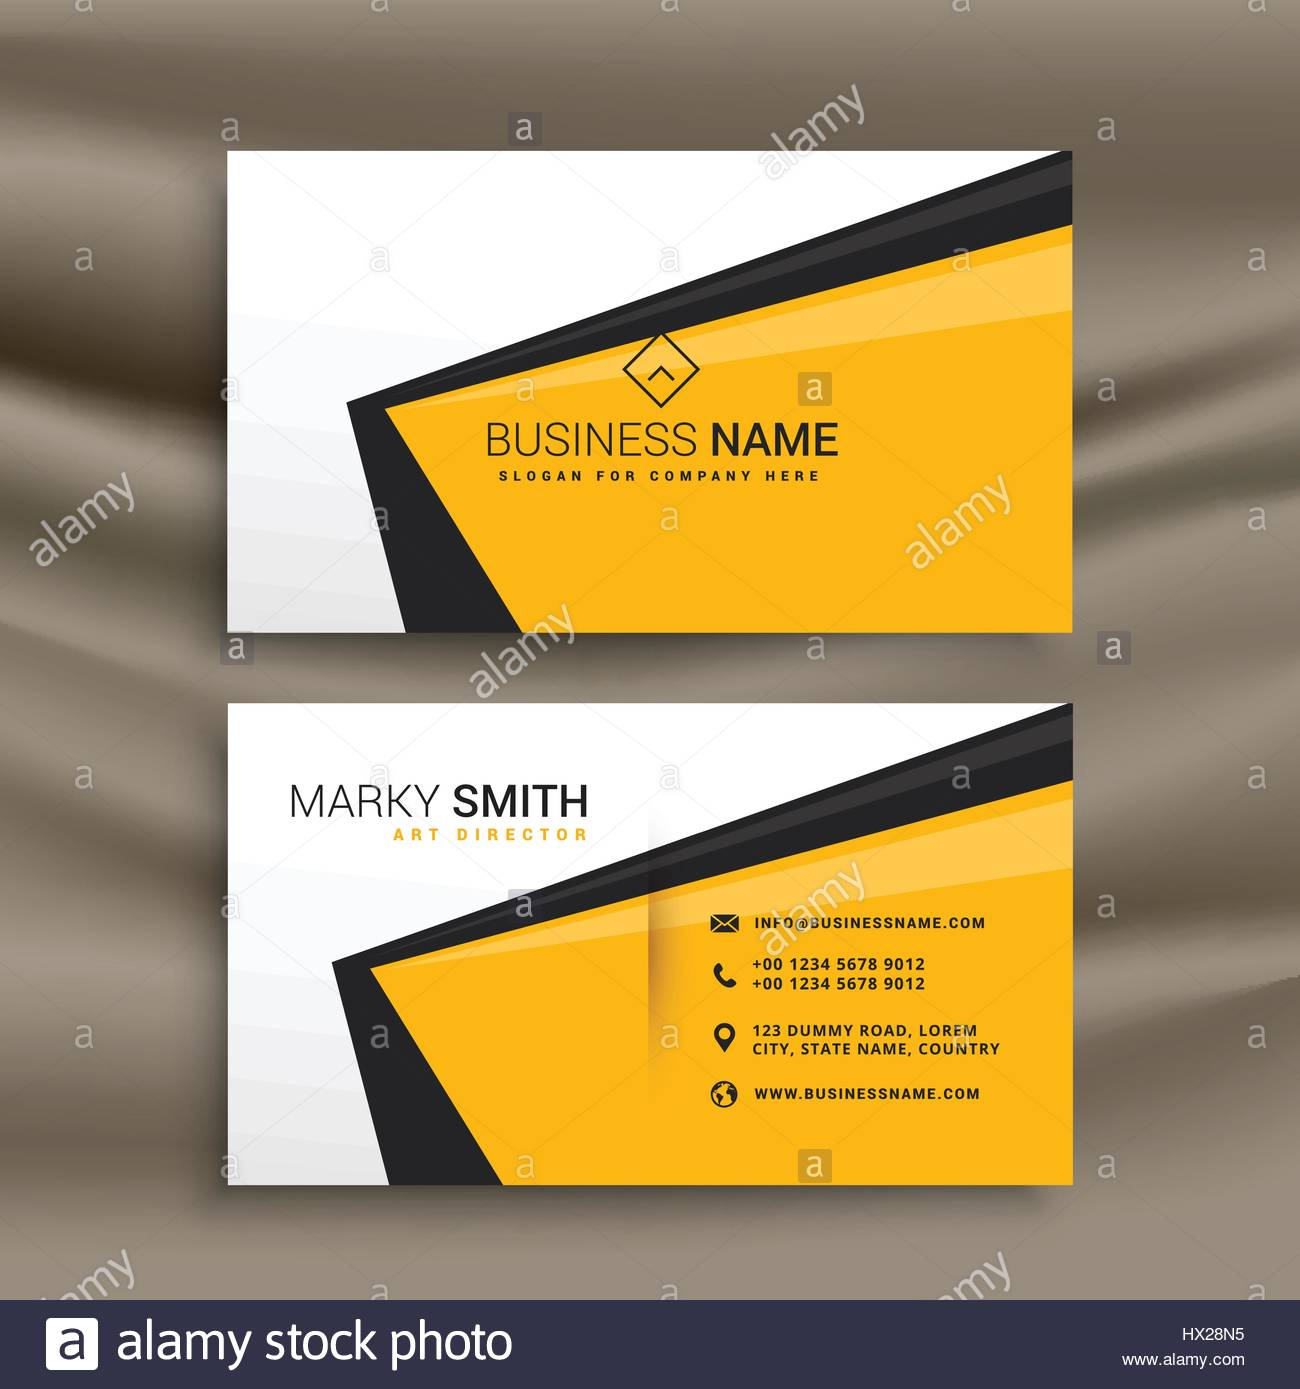 creative business card design with flat yellow black and white ...